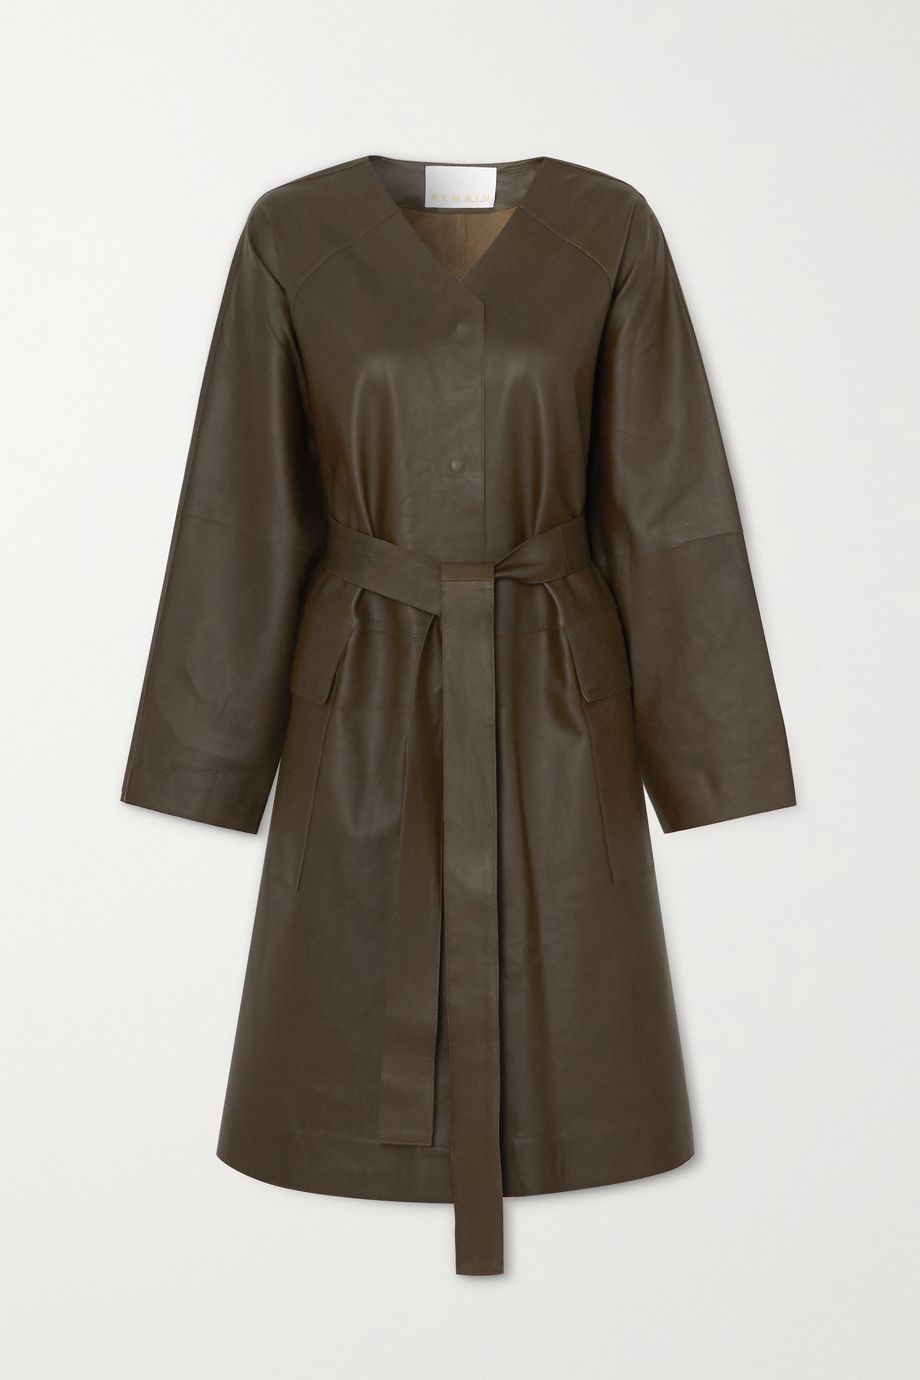 REMAIN Birger Christensen Savona belted leather coat